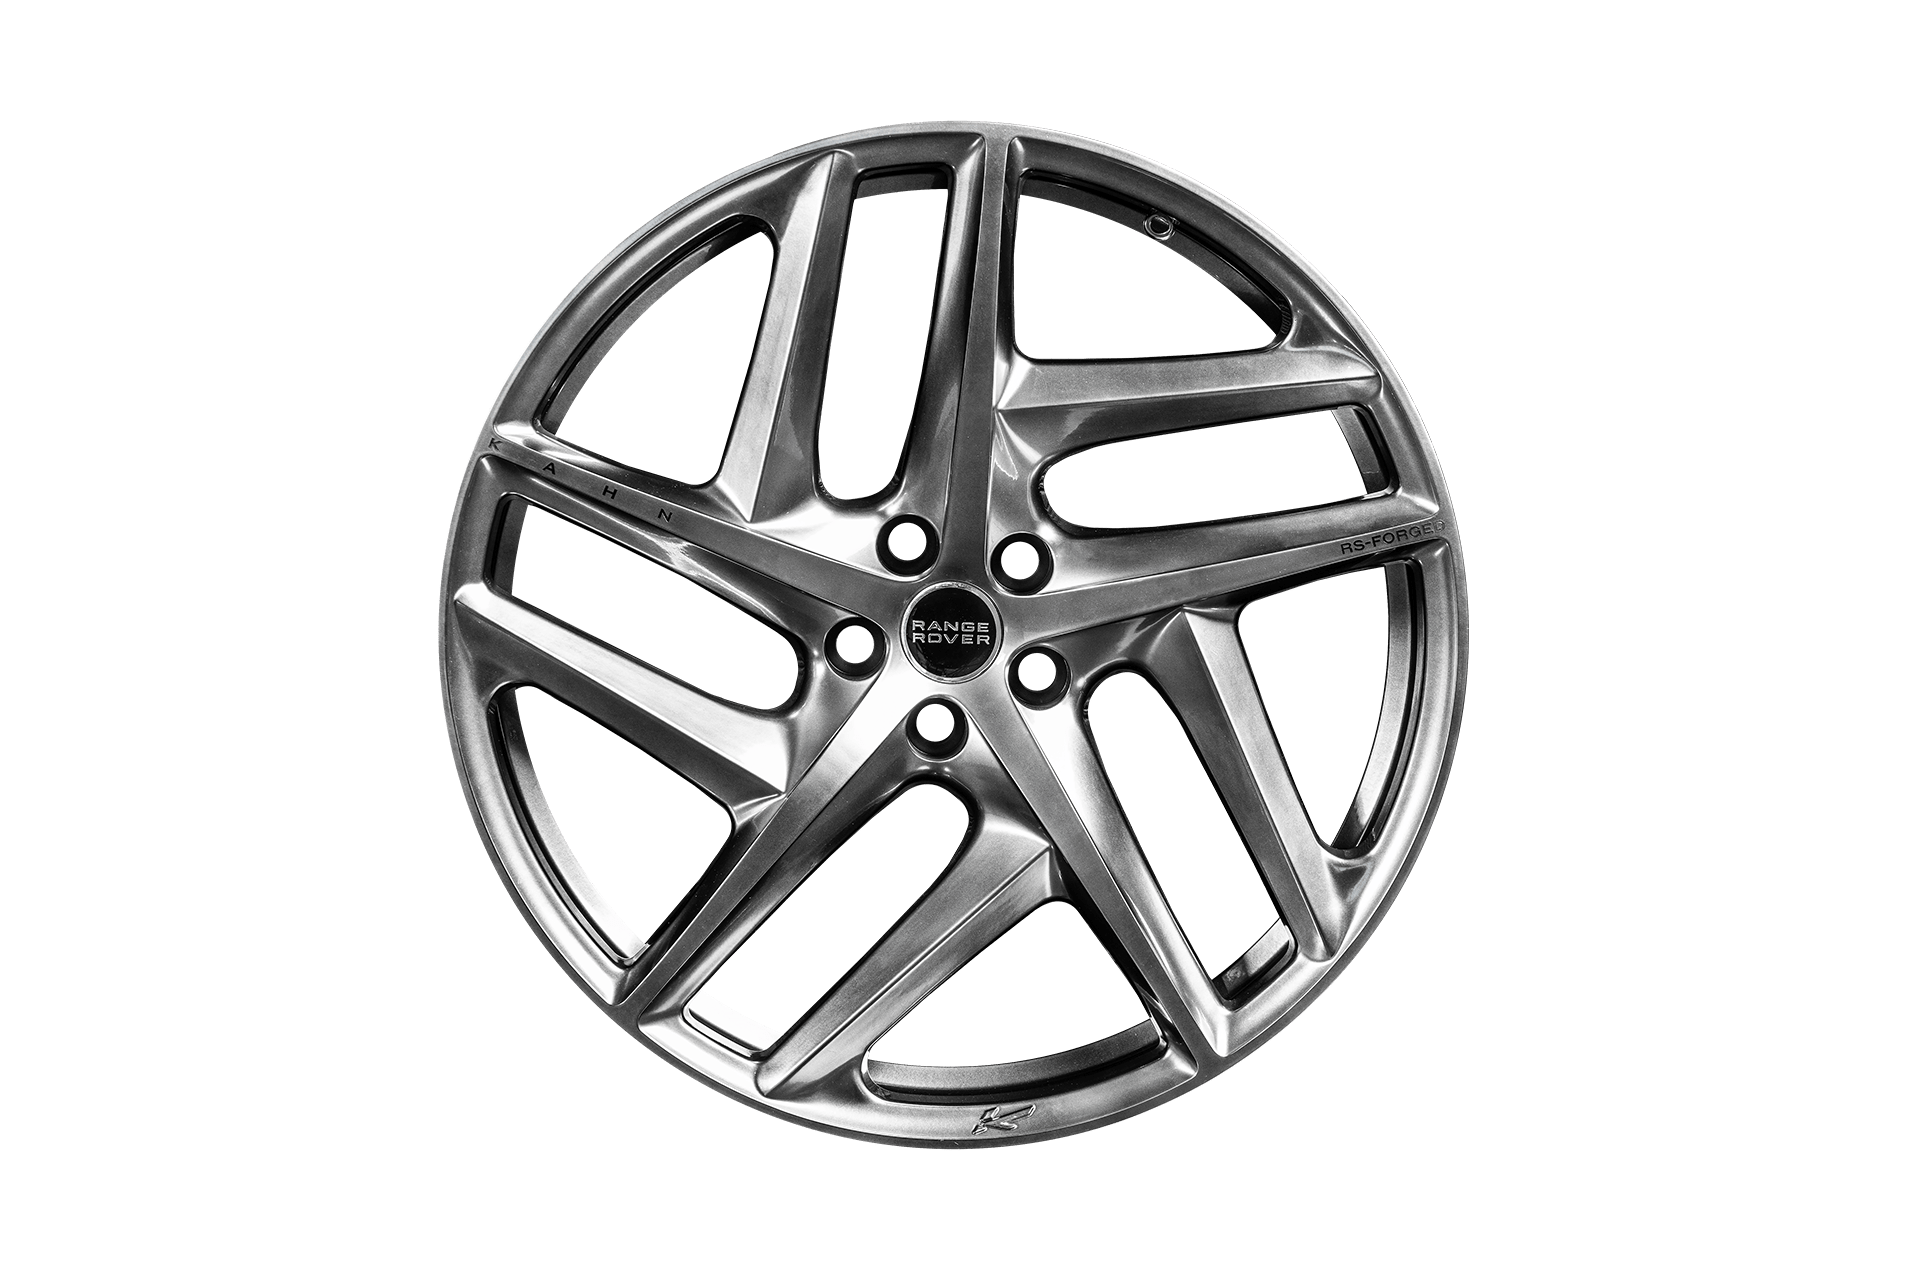 Range Rover (2018-PRESENT) Type 52 RS-Forged Alloy Wheels